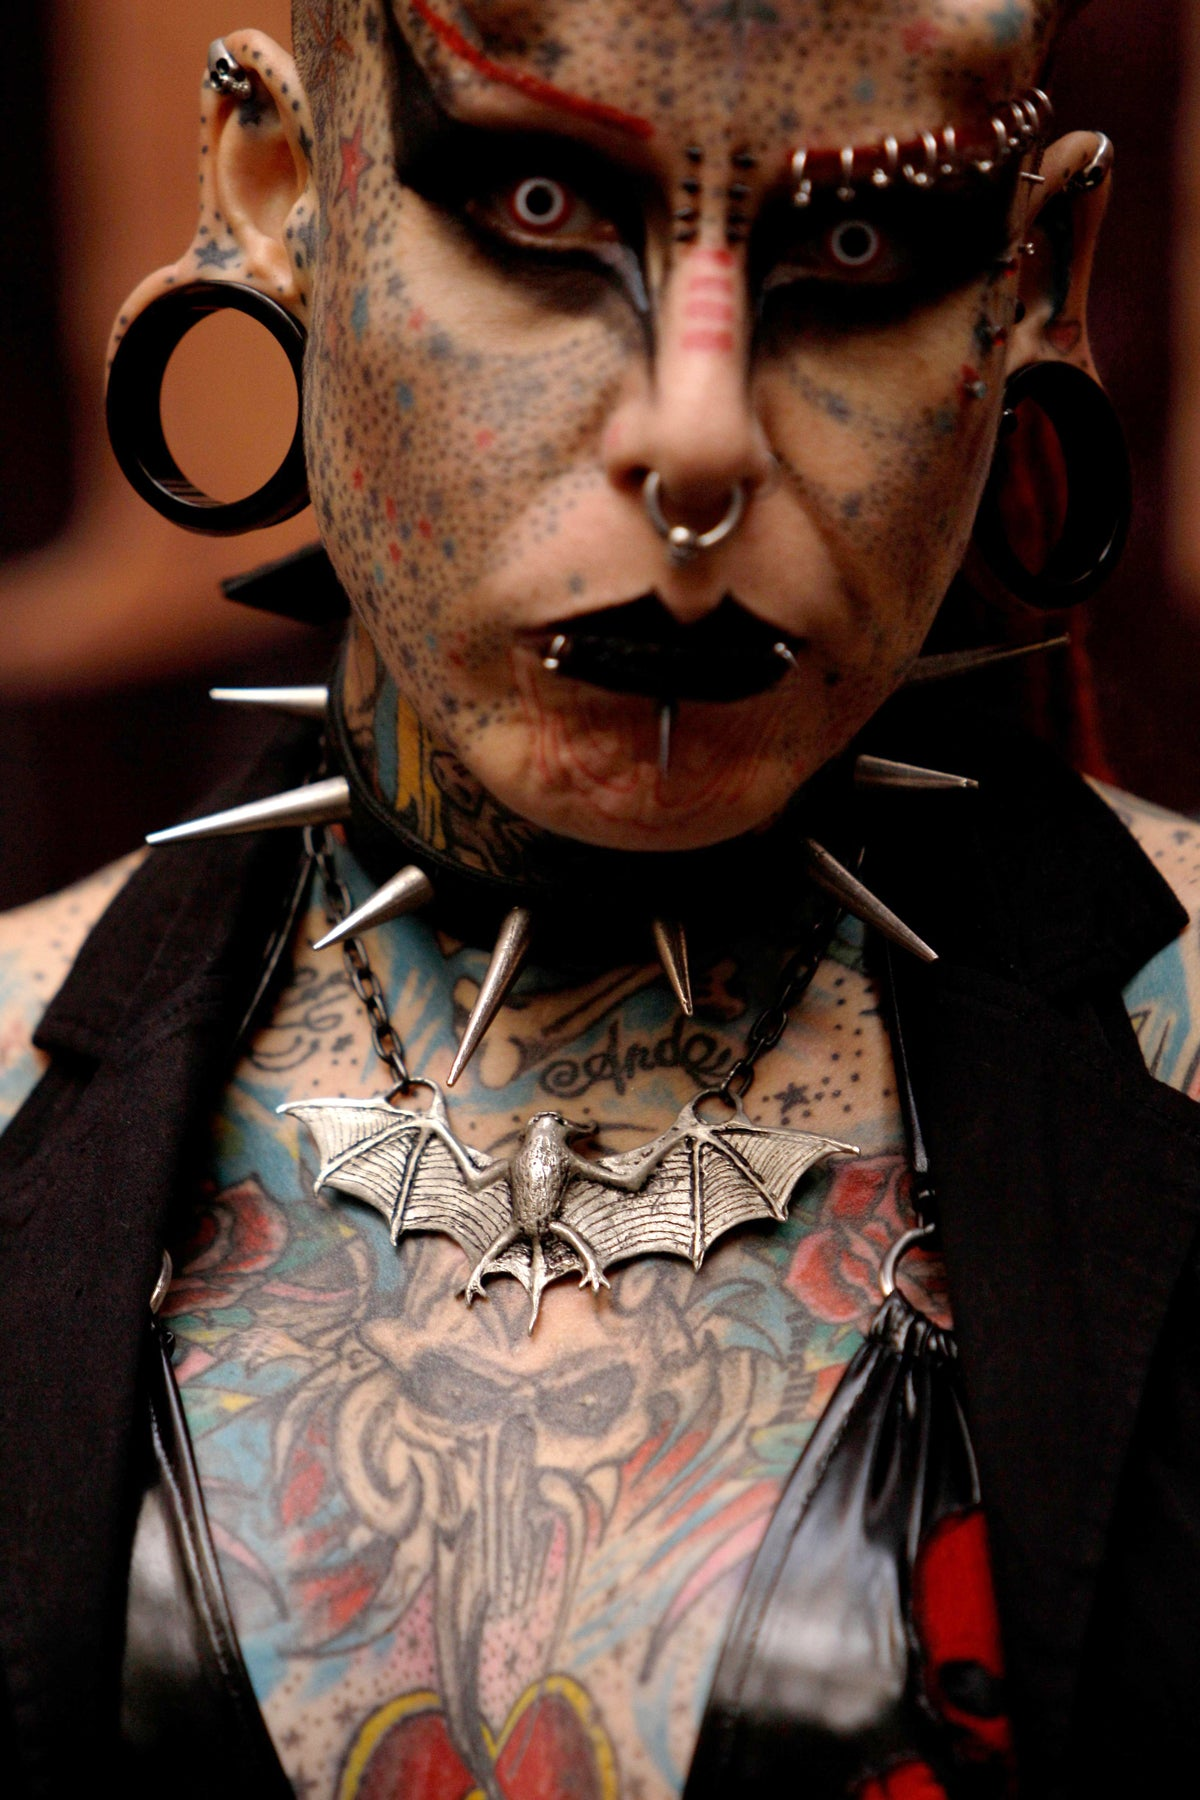 Woman with most extreme body modifications just got even more extreme